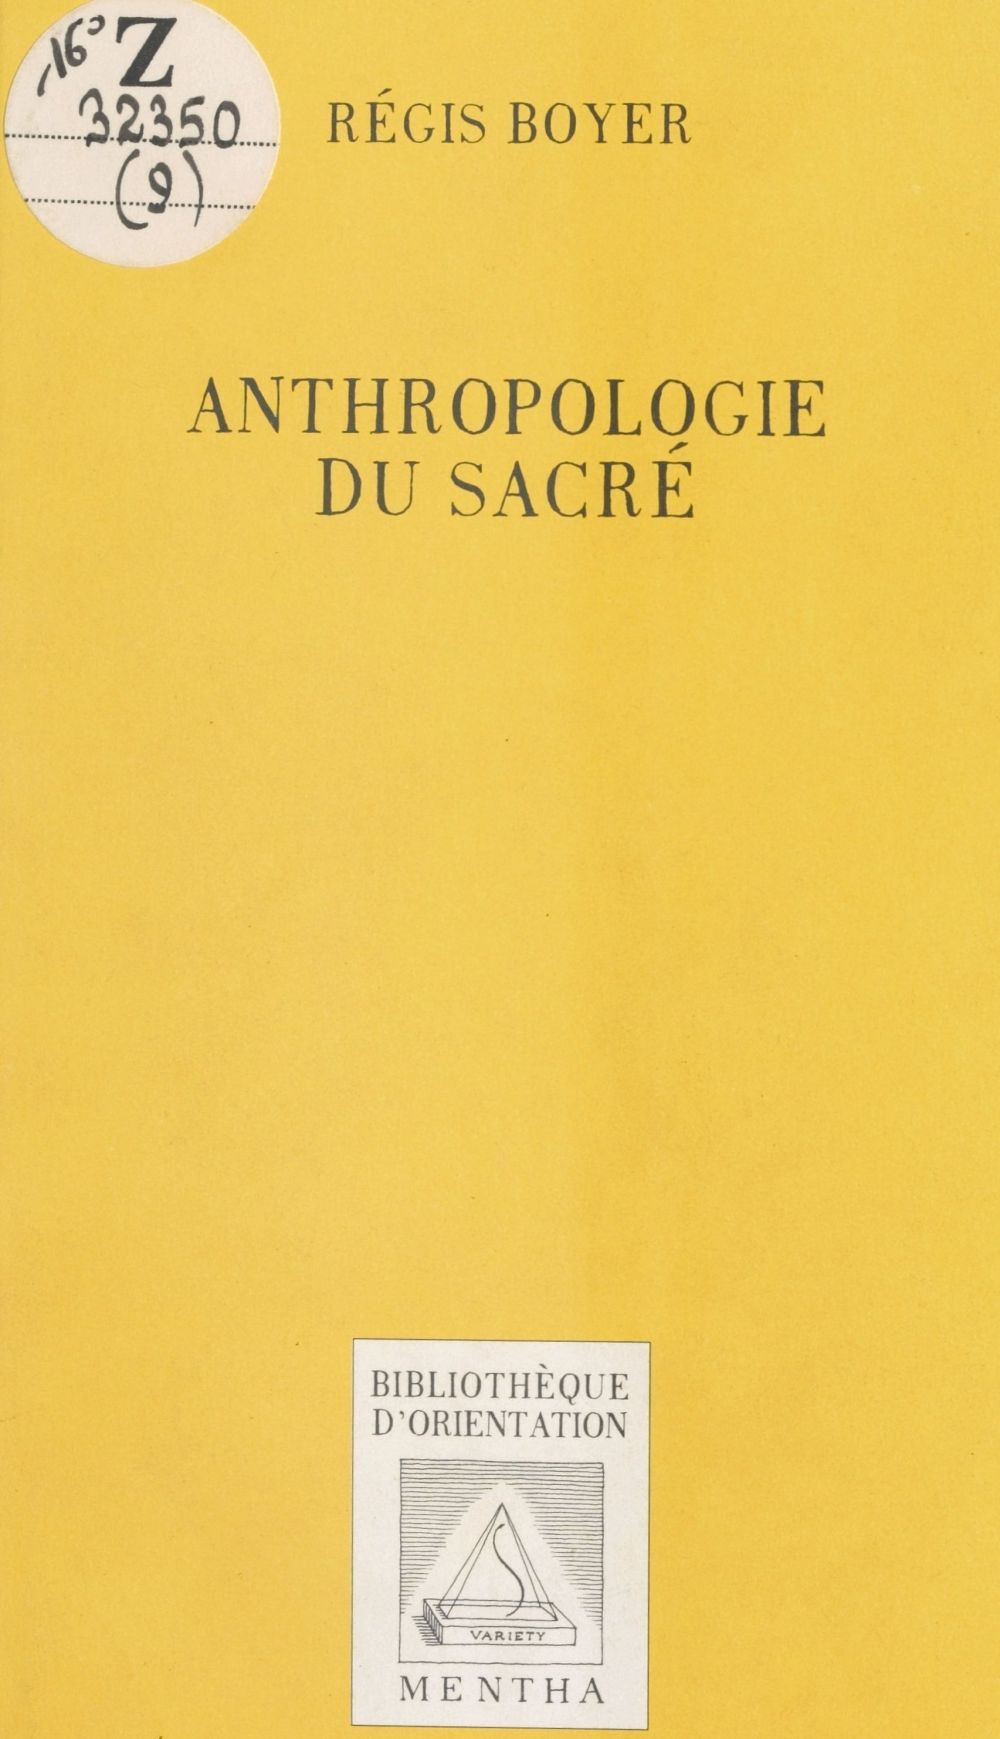 Anthropologie du sacré